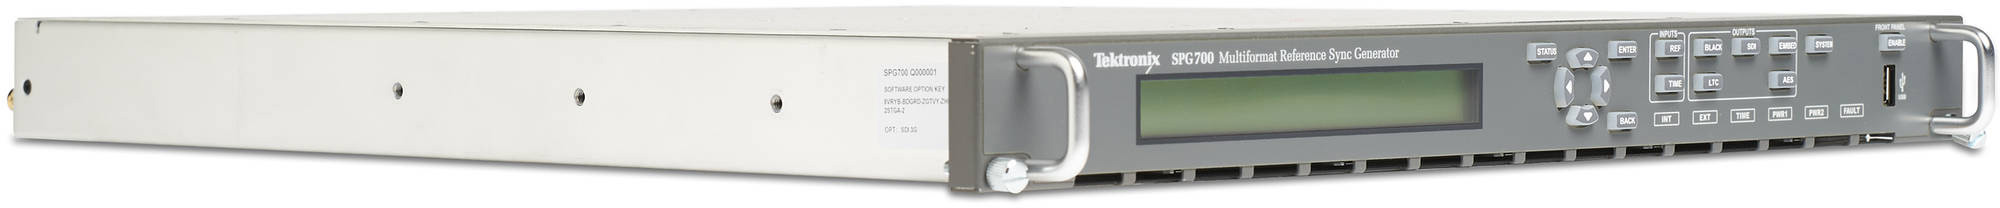 Tektronix SPG-700 SDI Unit (Adds Two Independent Sets of 3G/HD/SD/SDI) Factory Installed TEK-SPG-700-SDI